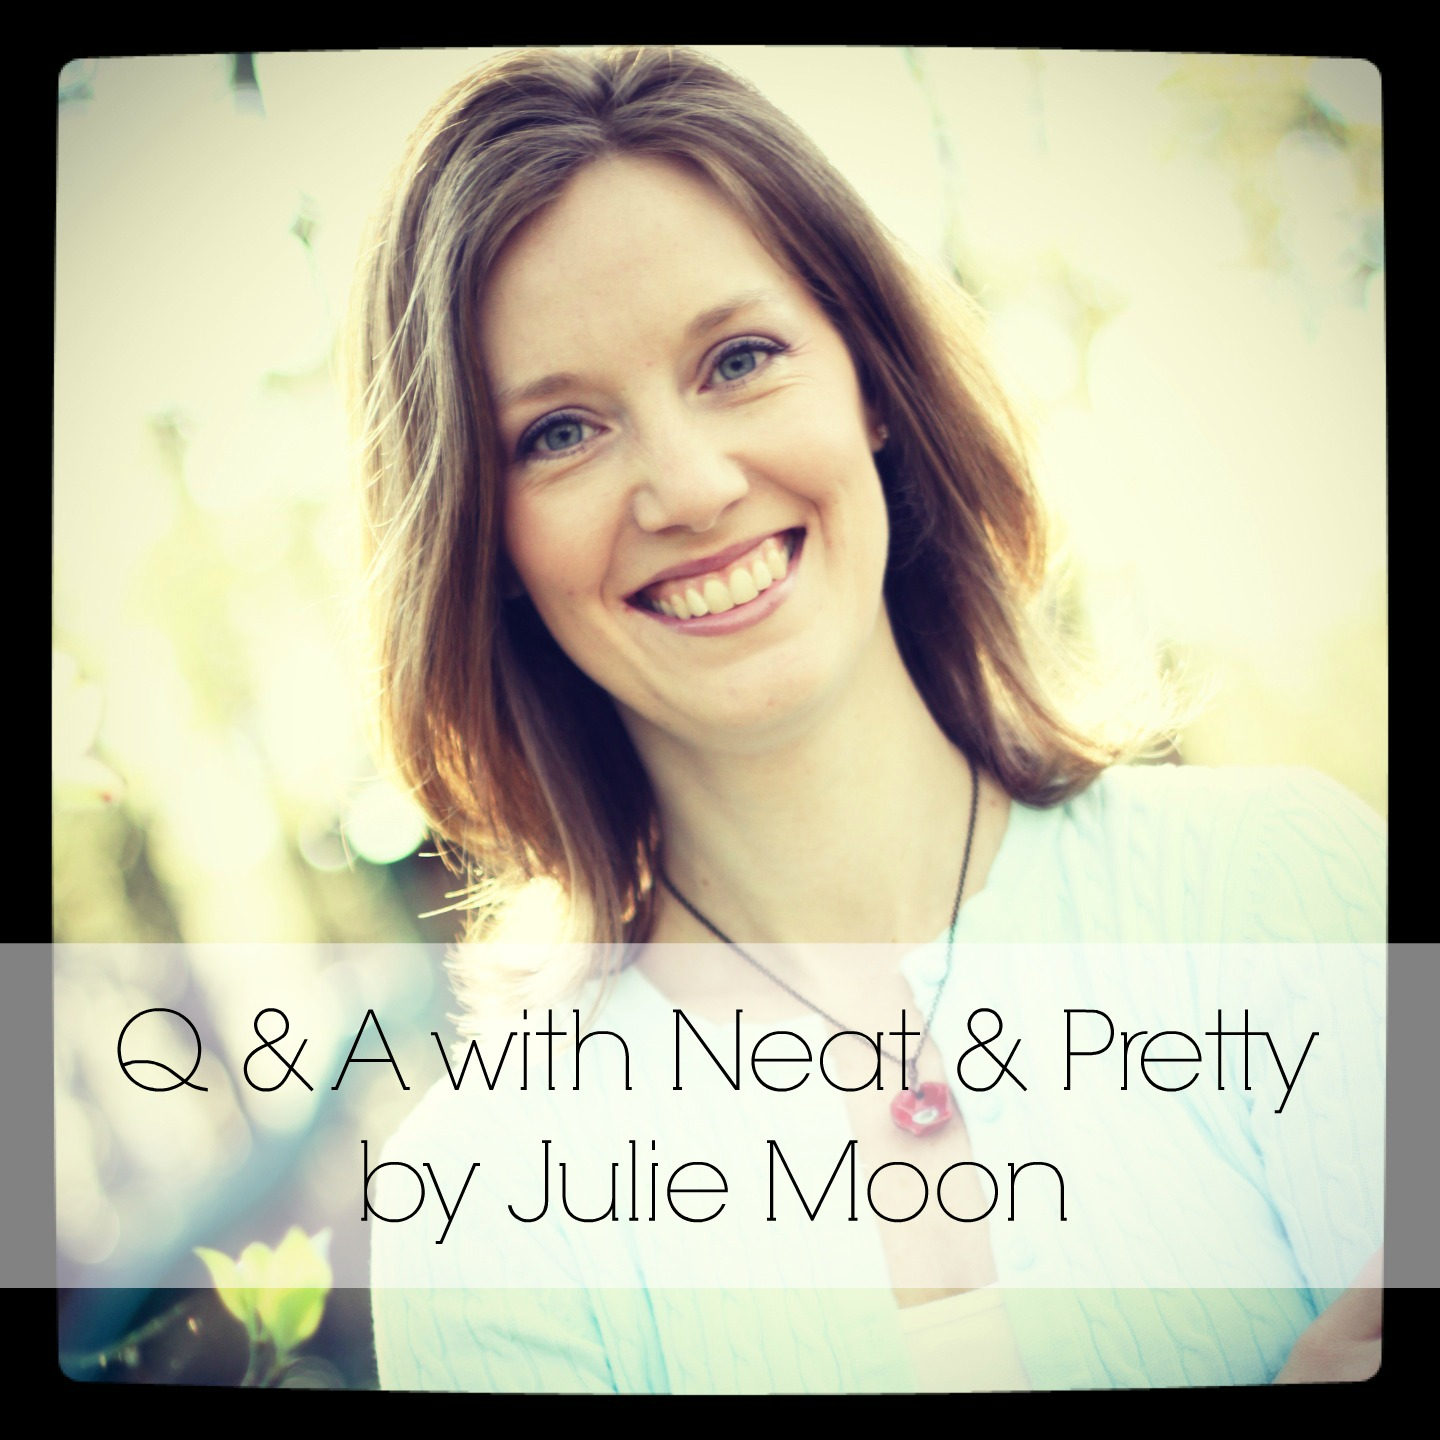 Q & A with Neat & Pretty